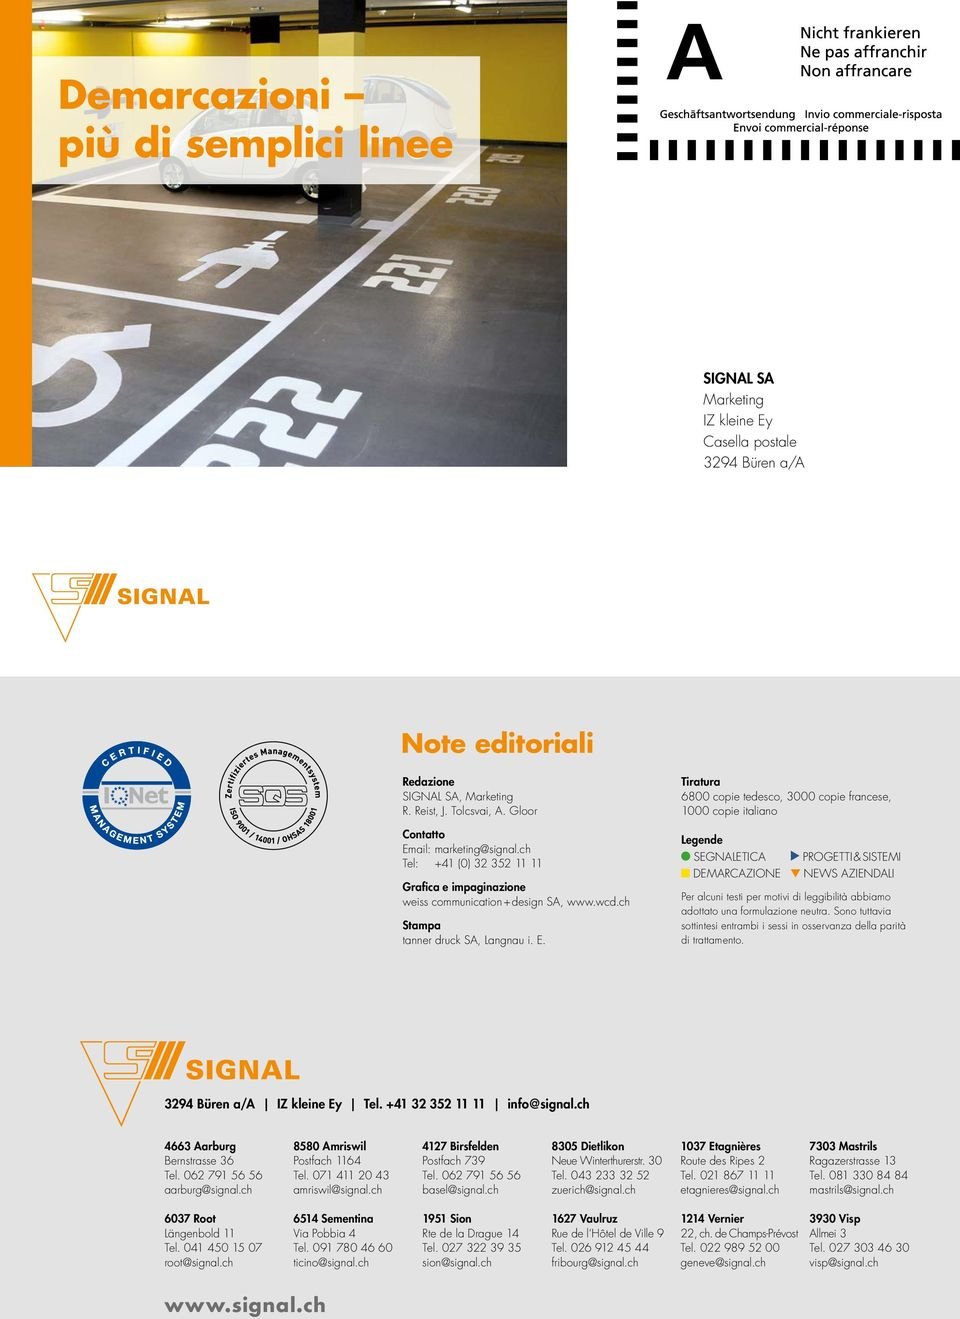 ail: marketing@signal.ch Tel: +41 (0) 32 352 11 11 Grafica e impaginazione weiss communication + design SA, www.wcd.ch Stampa tanner druck SA, Langnau i. E.